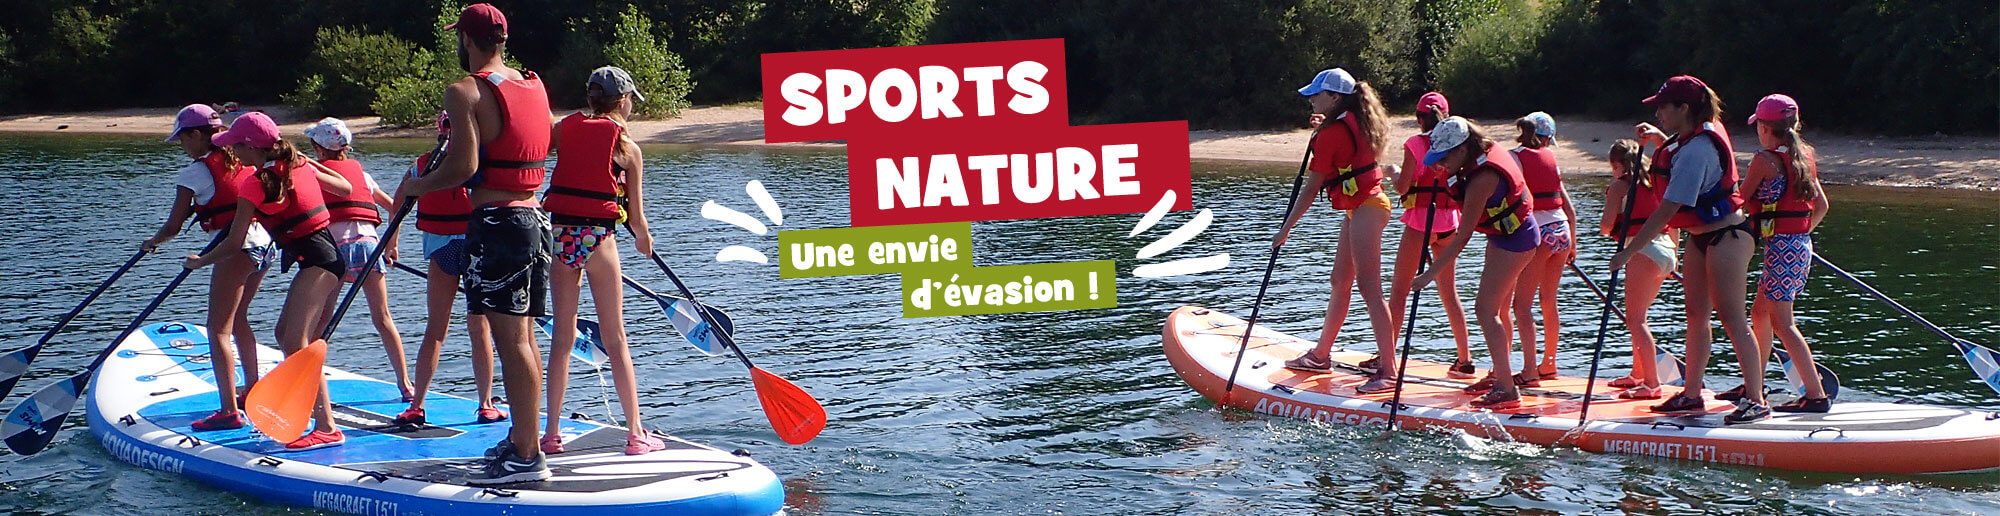 stand-up-paddle-geant-pareloup-rodez-millau